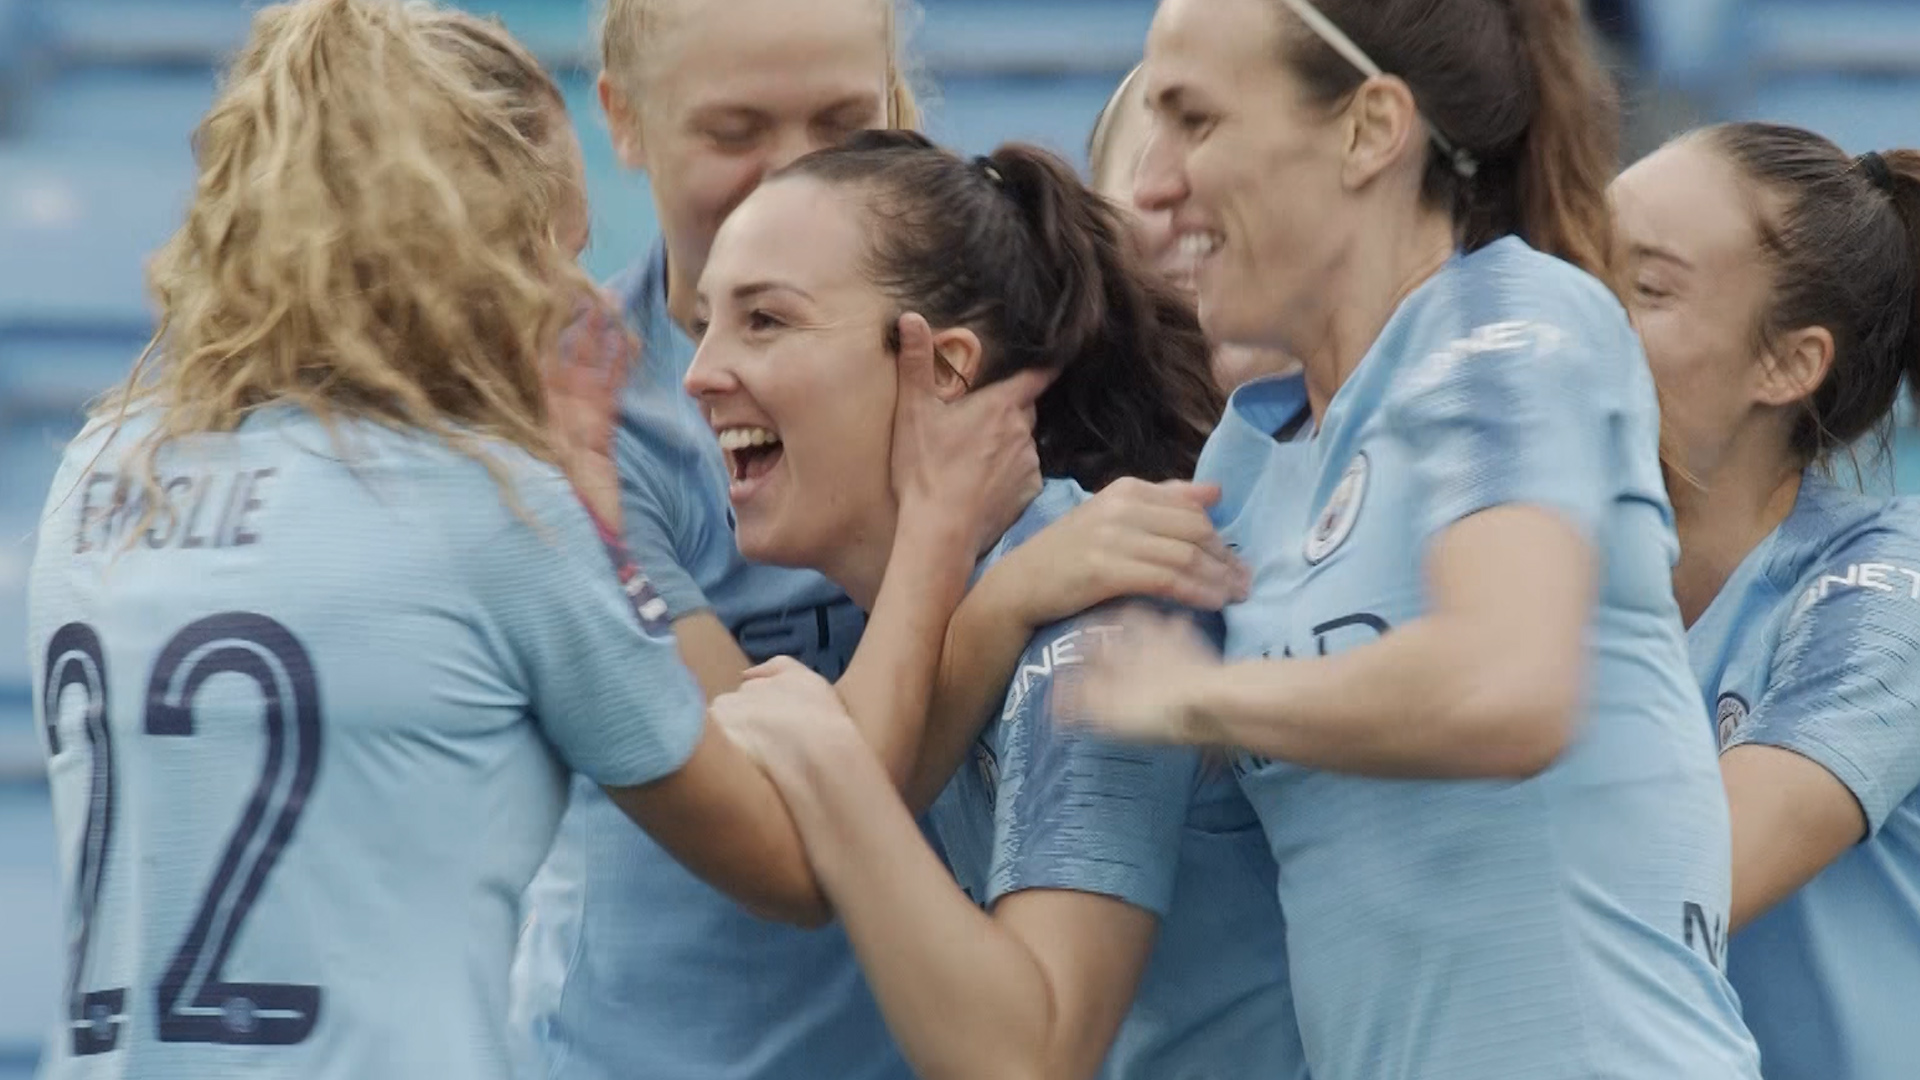 WSL: Caroline Weir puts Manchester City ahead against West Ham